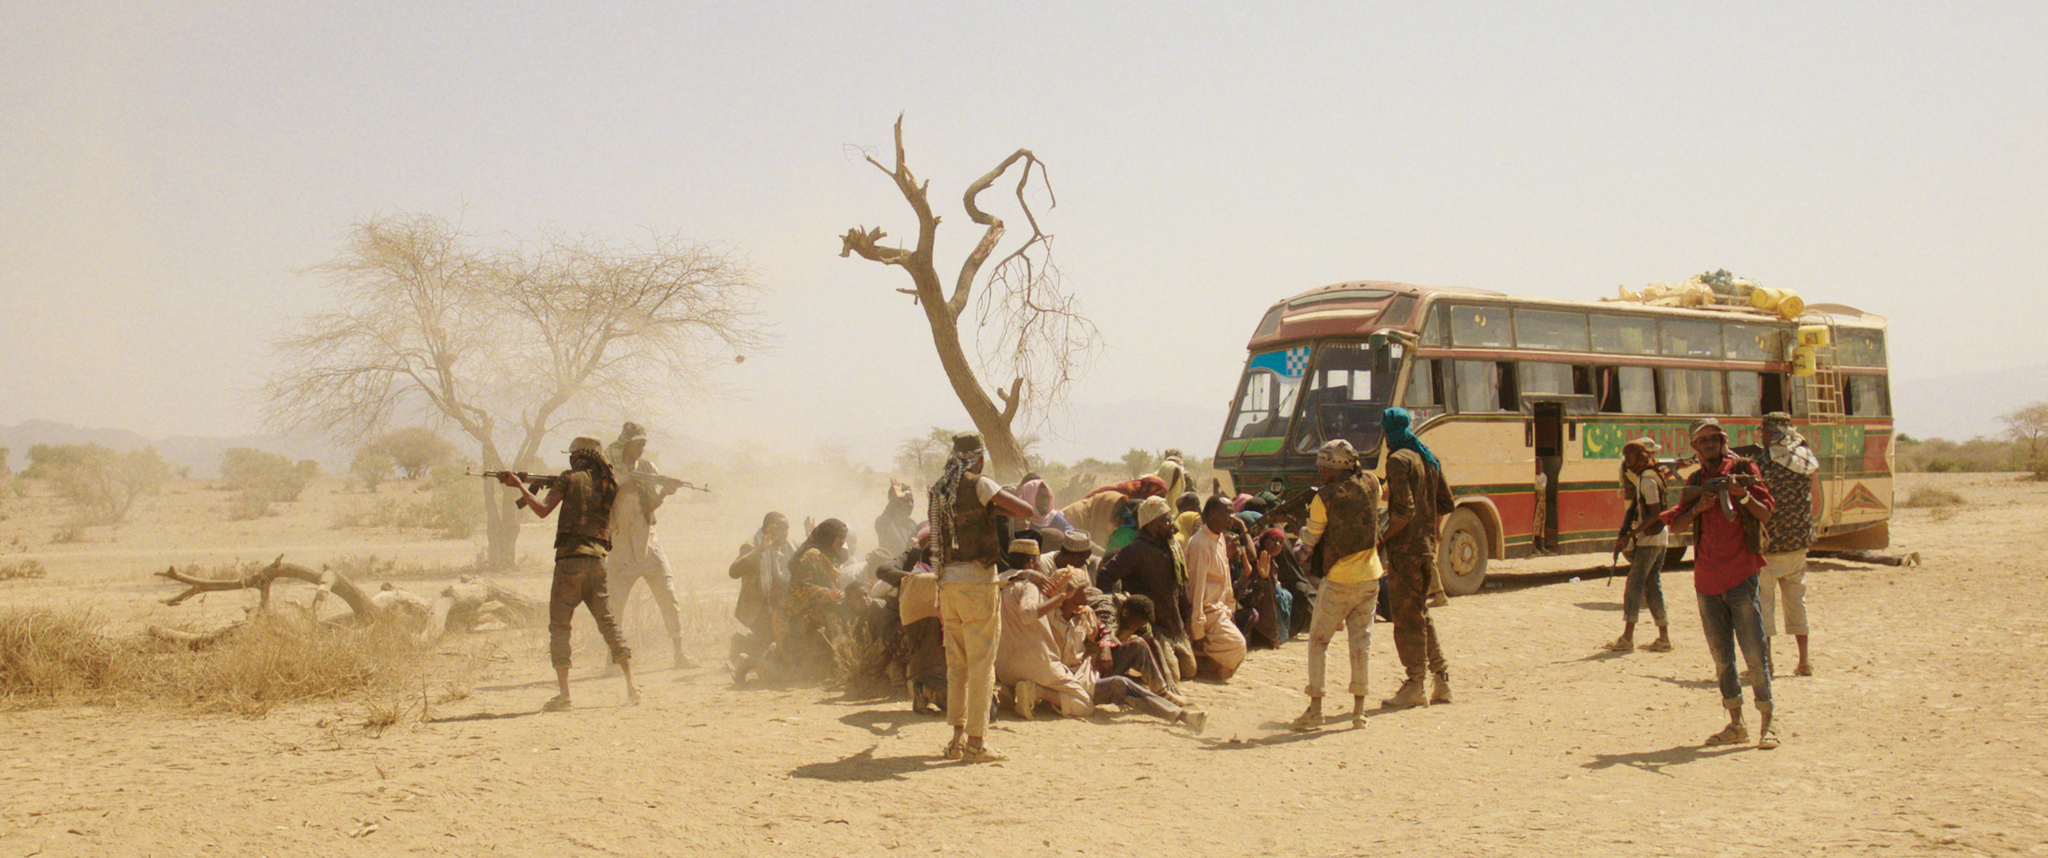 Katja Benrath: Watu Wote Explores Terrorist Attacks in Kenya